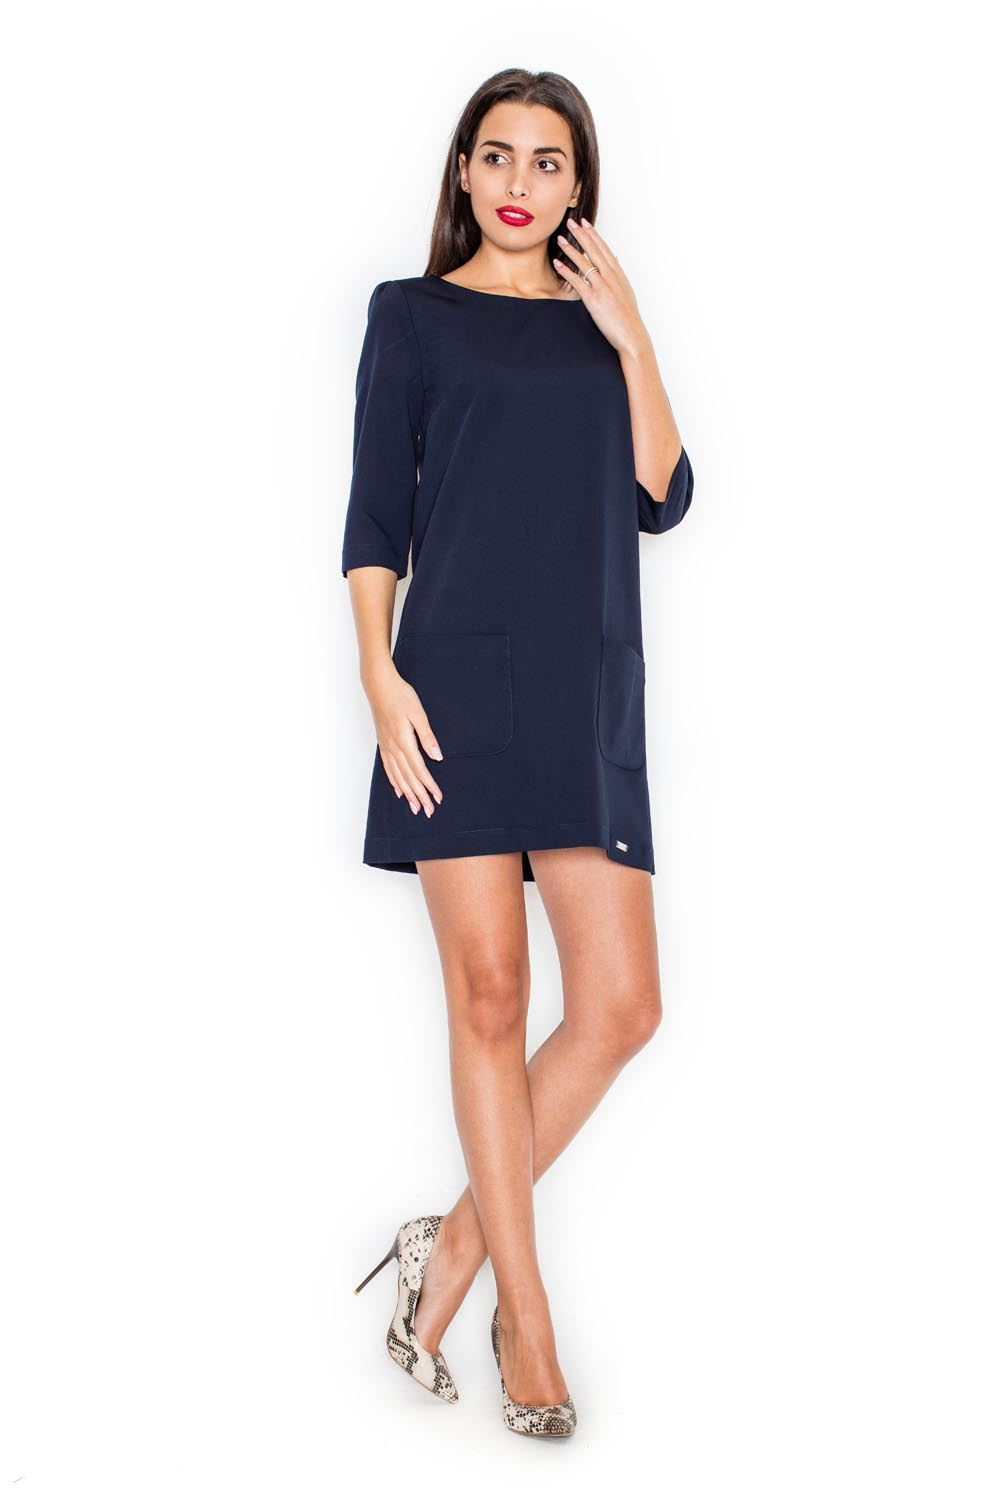 Long Sleeves Navy Blue Shift Dress